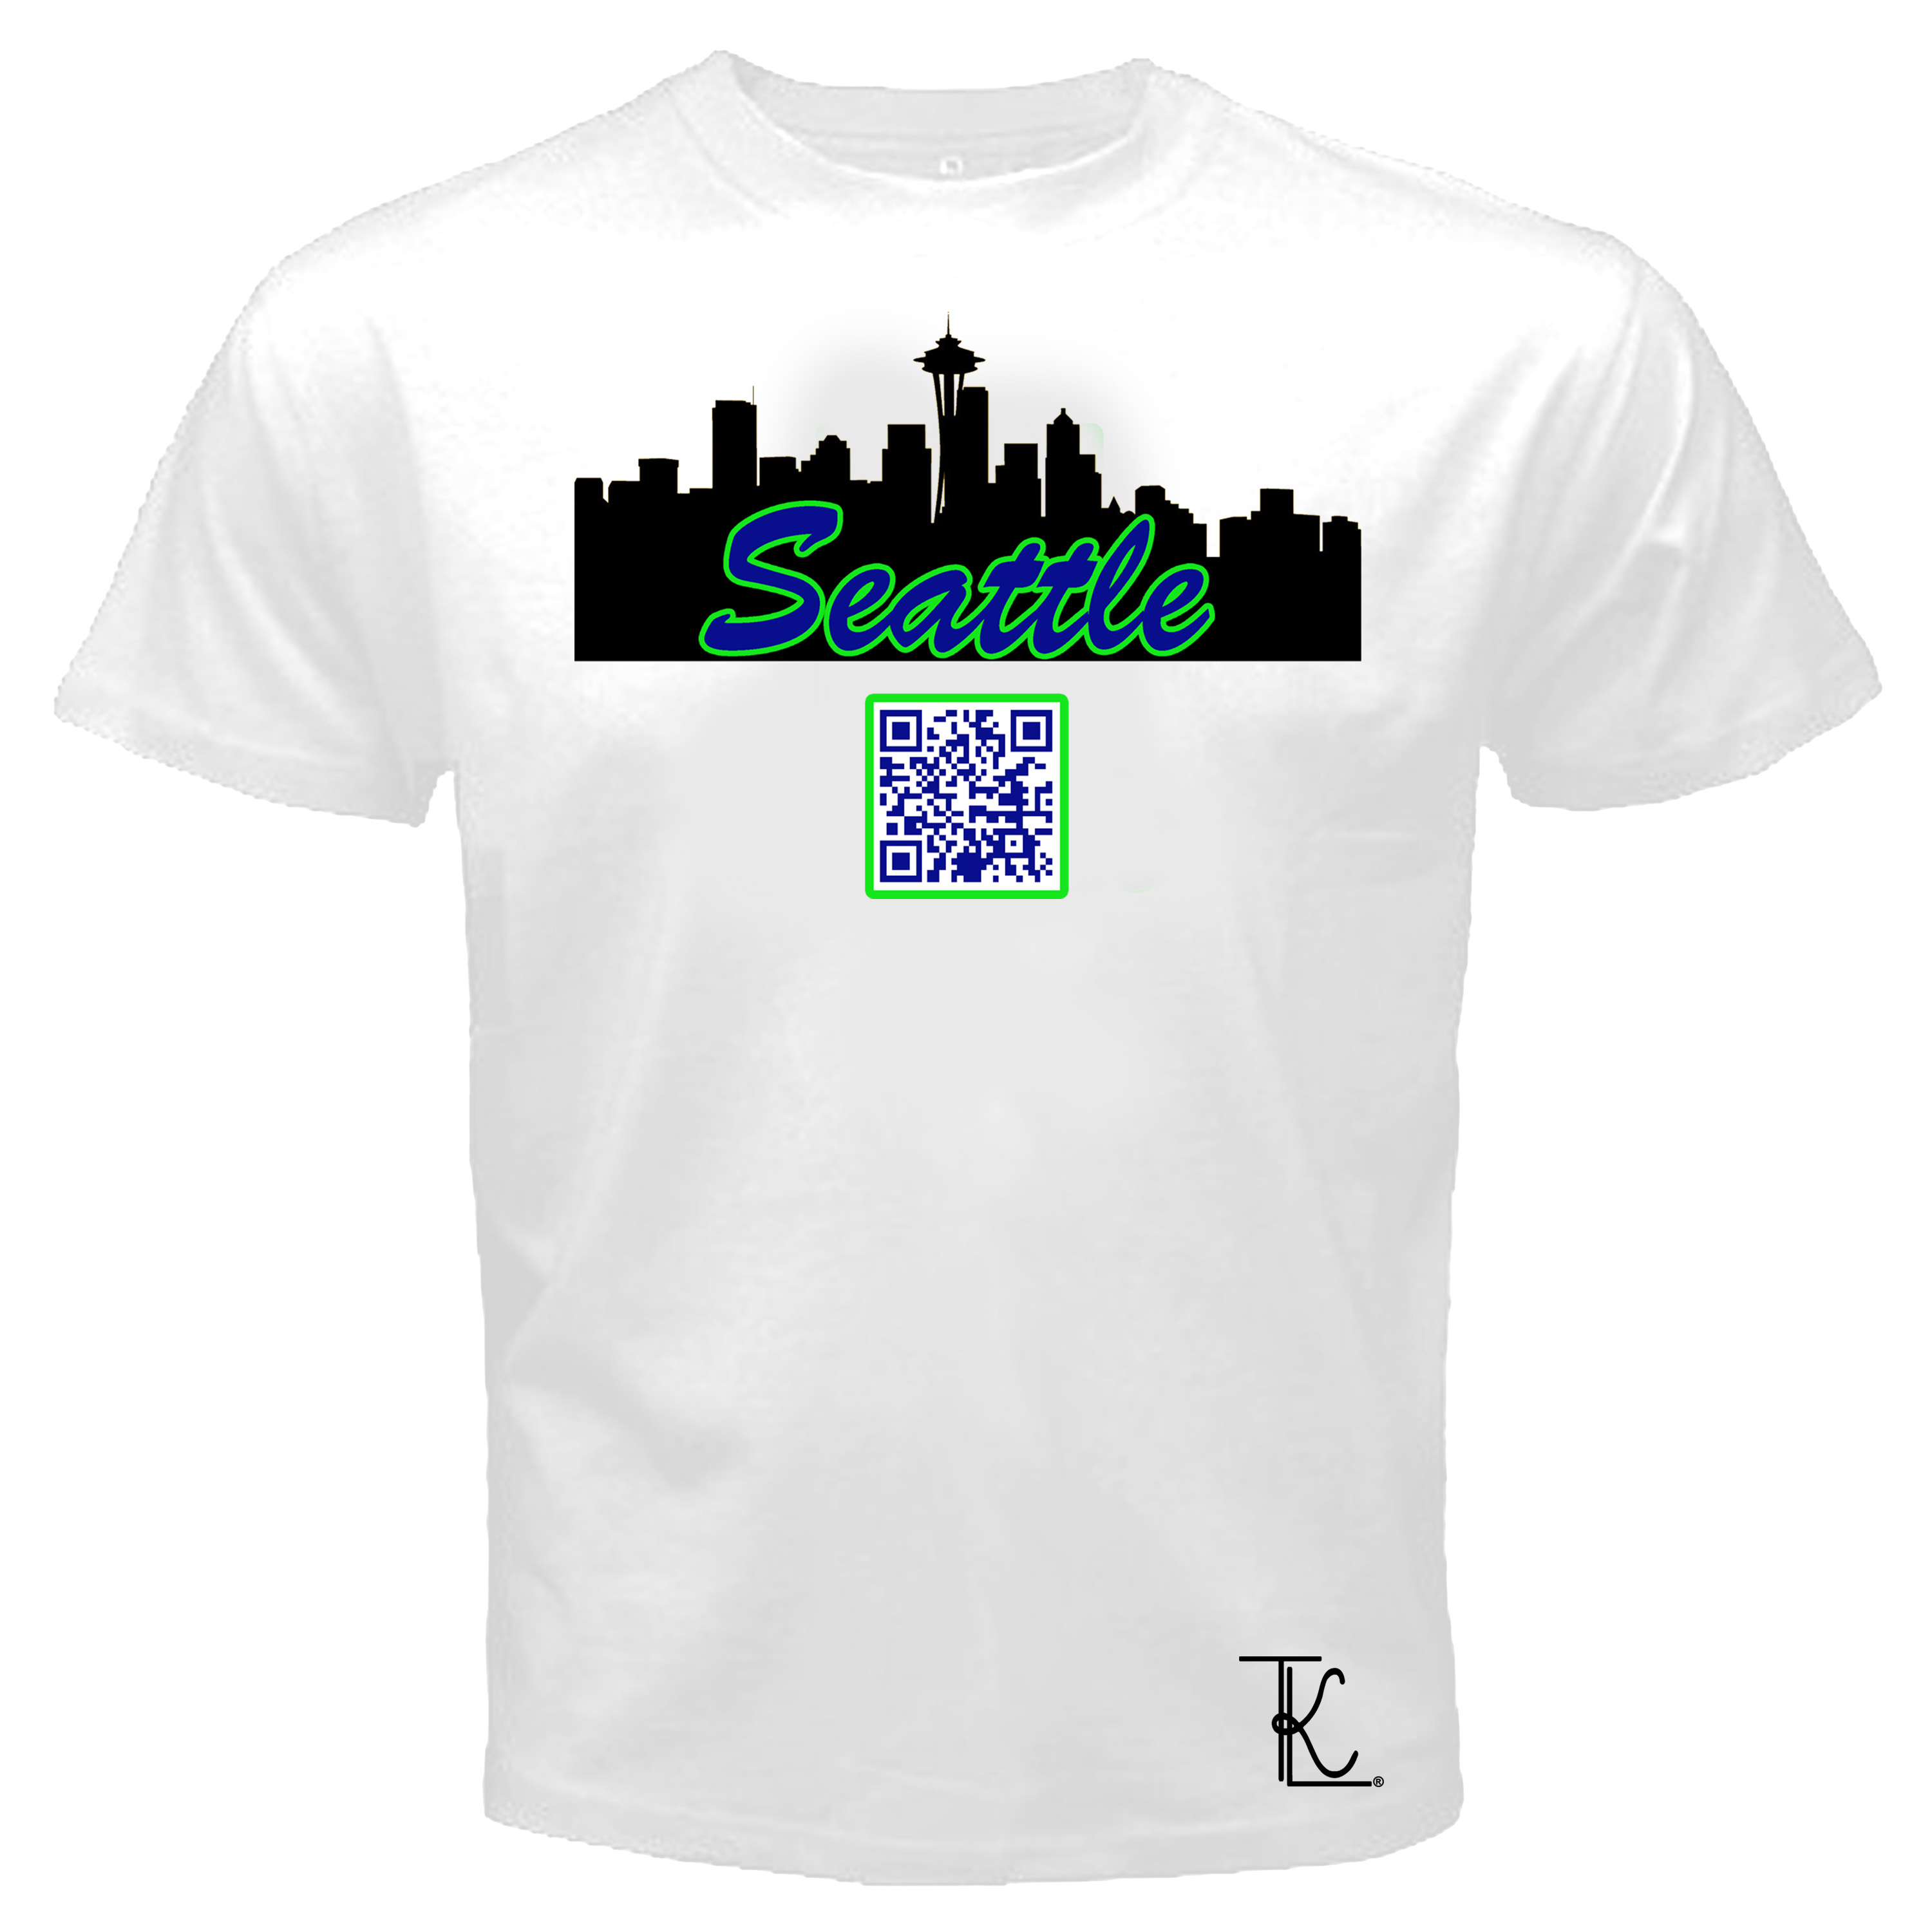 Tkl custom prints and apparel seattle theme qr code t for Seattle t shirt printing